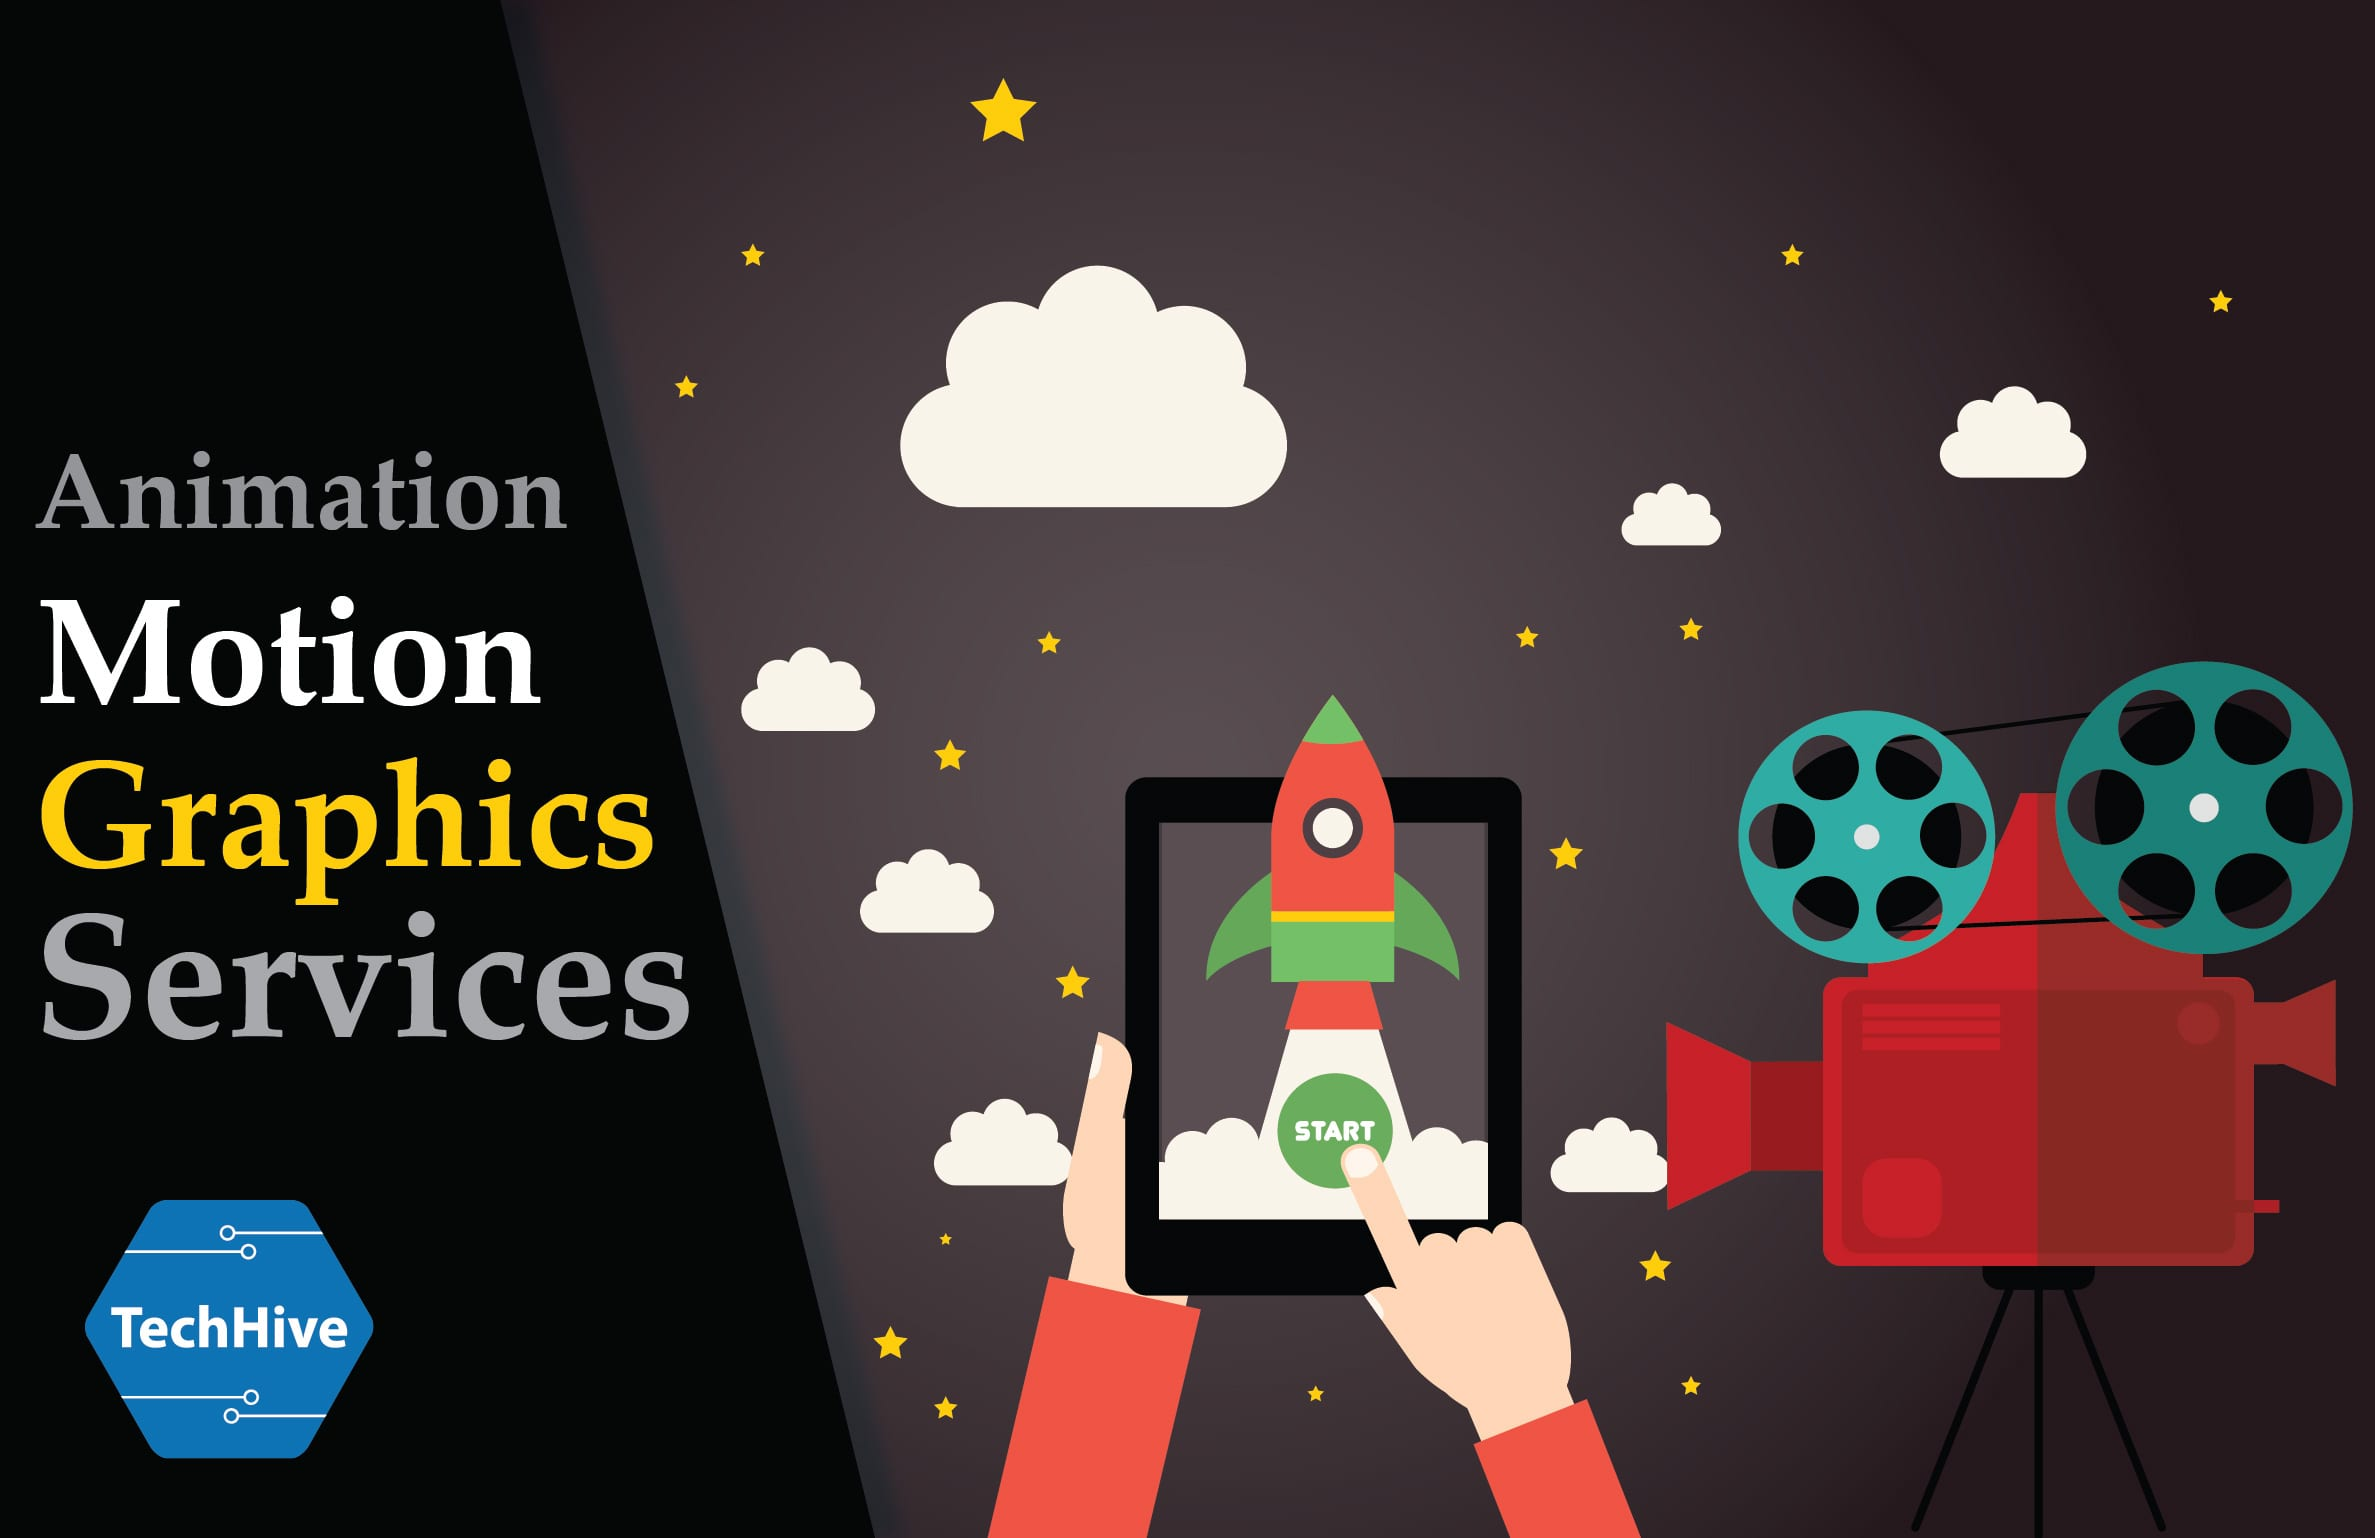 animation and motion graphics services